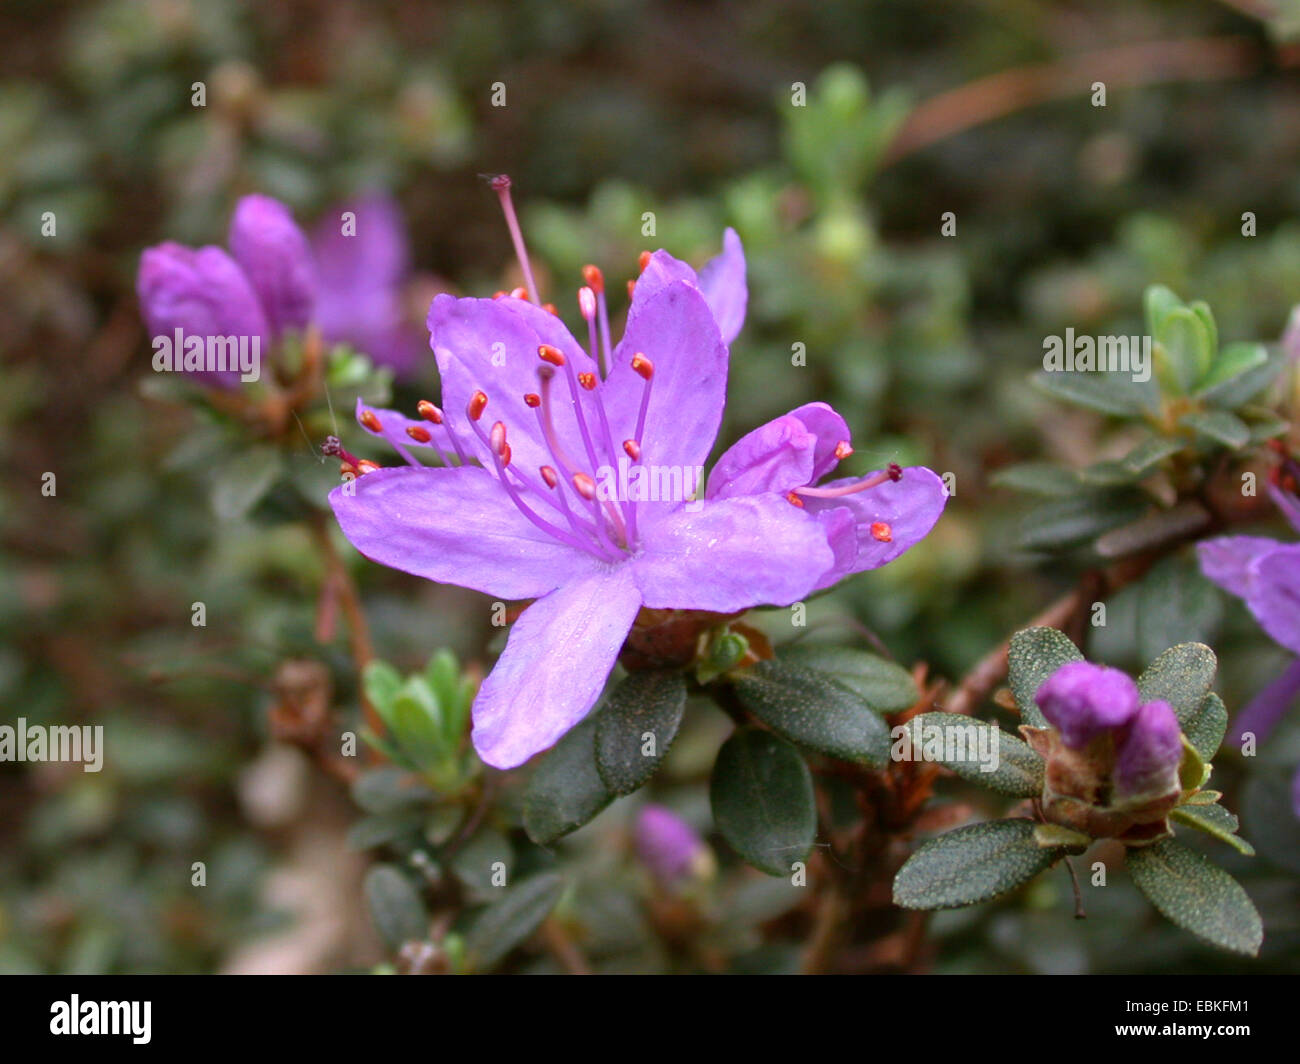 Rhododendron (Rhododendron impeditum), flower - Stock Image